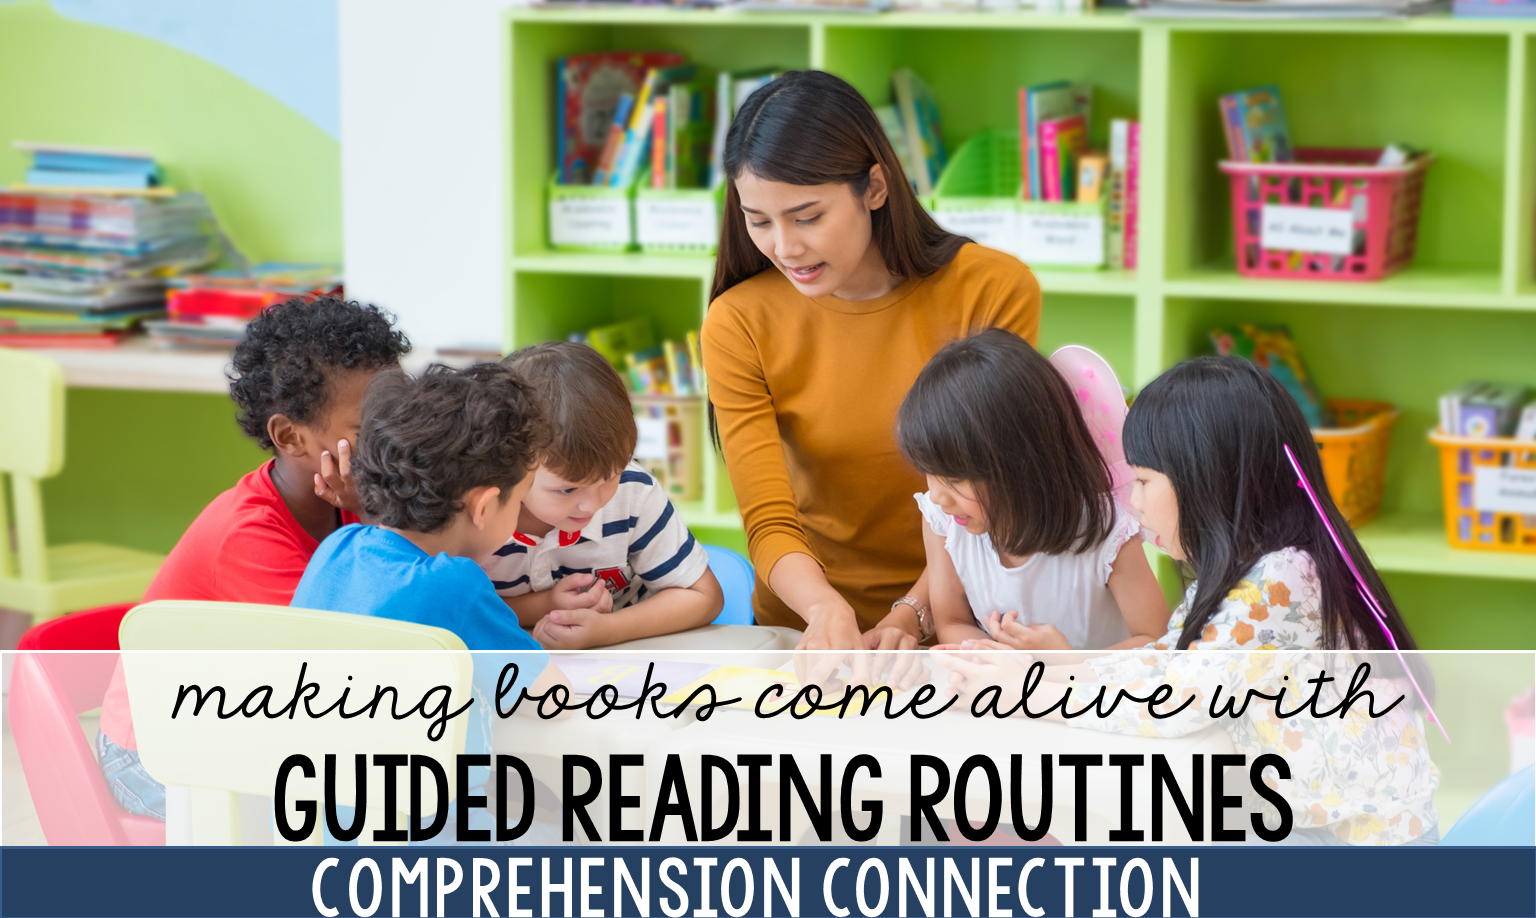 Guided reading is how we help children love to read. Seize the opportunity with these five best practices.